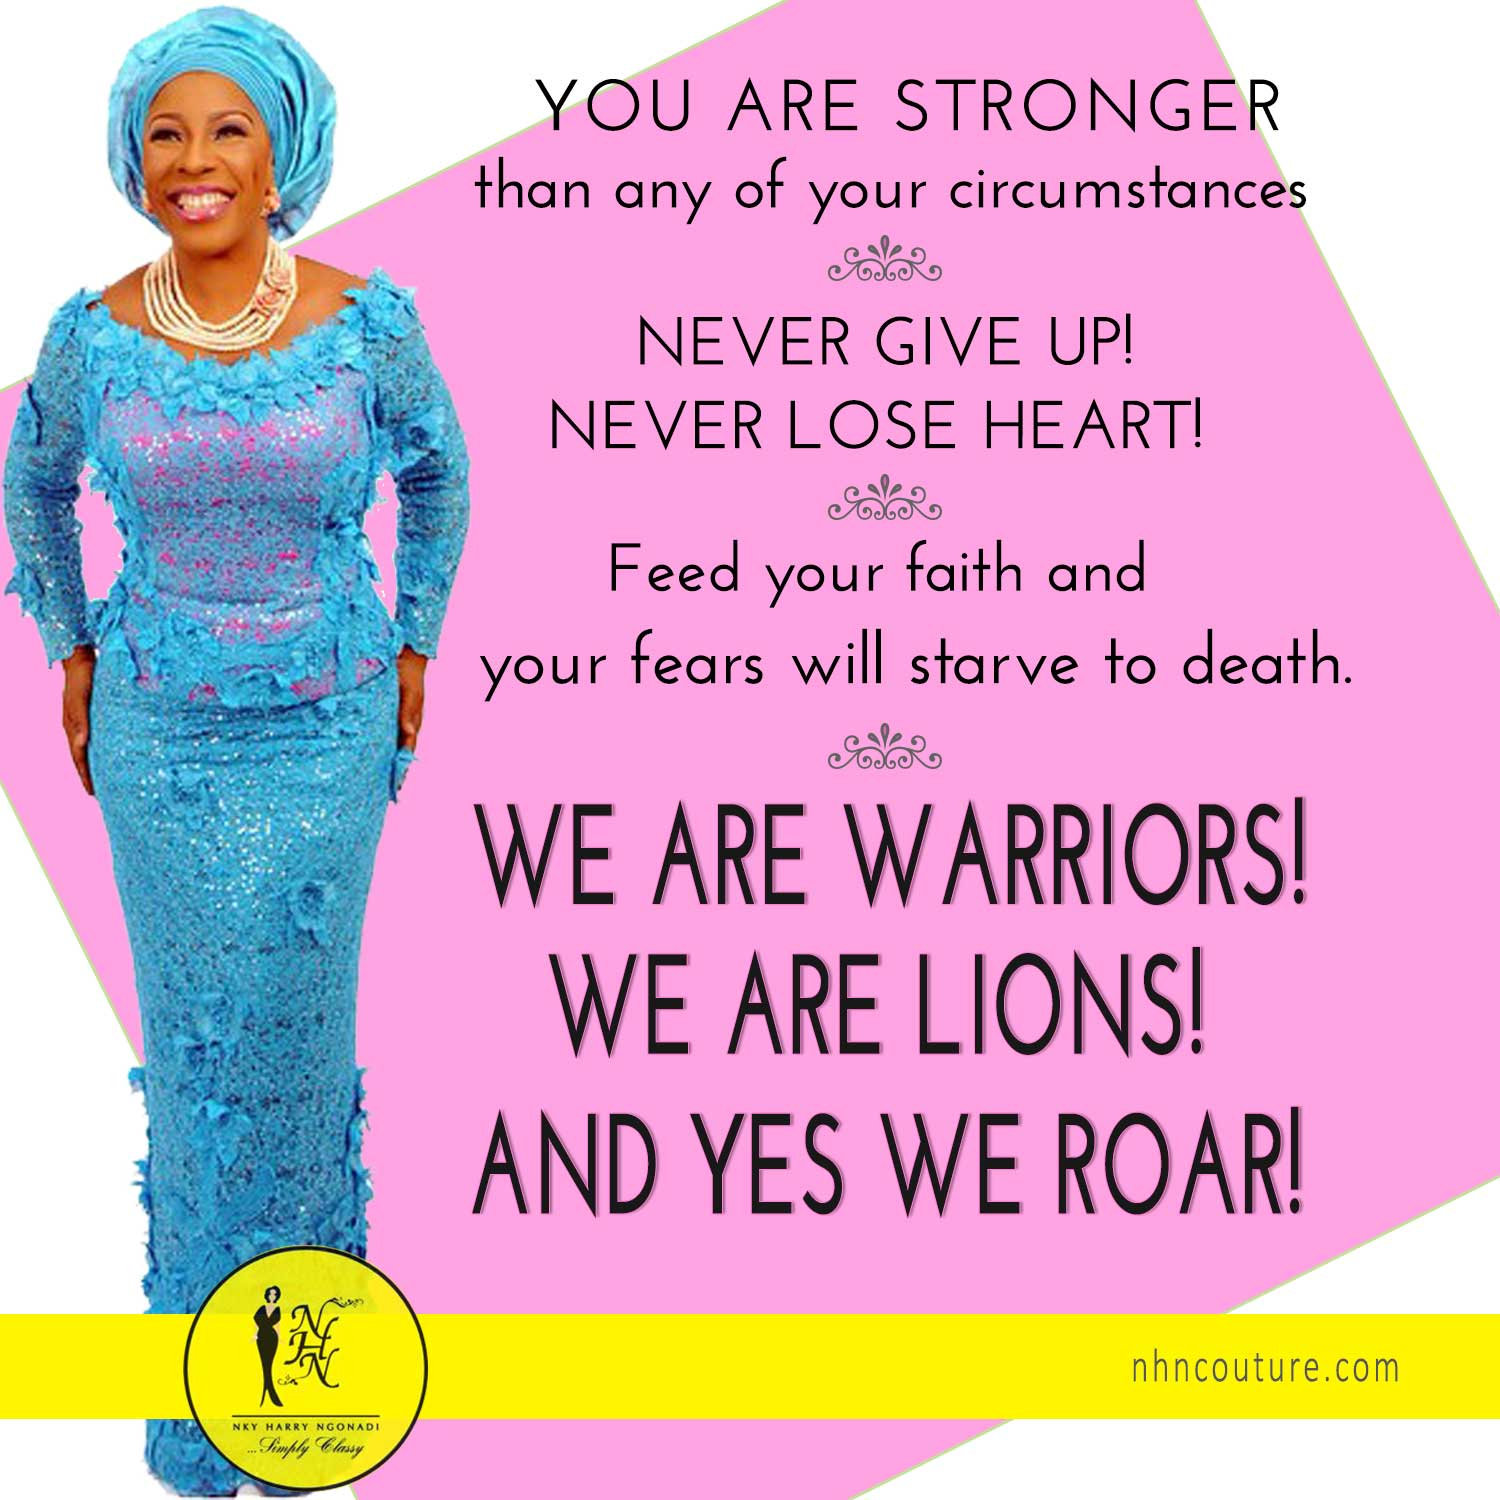 You-are-warriors-Nkechi-Harry-Ngonadi